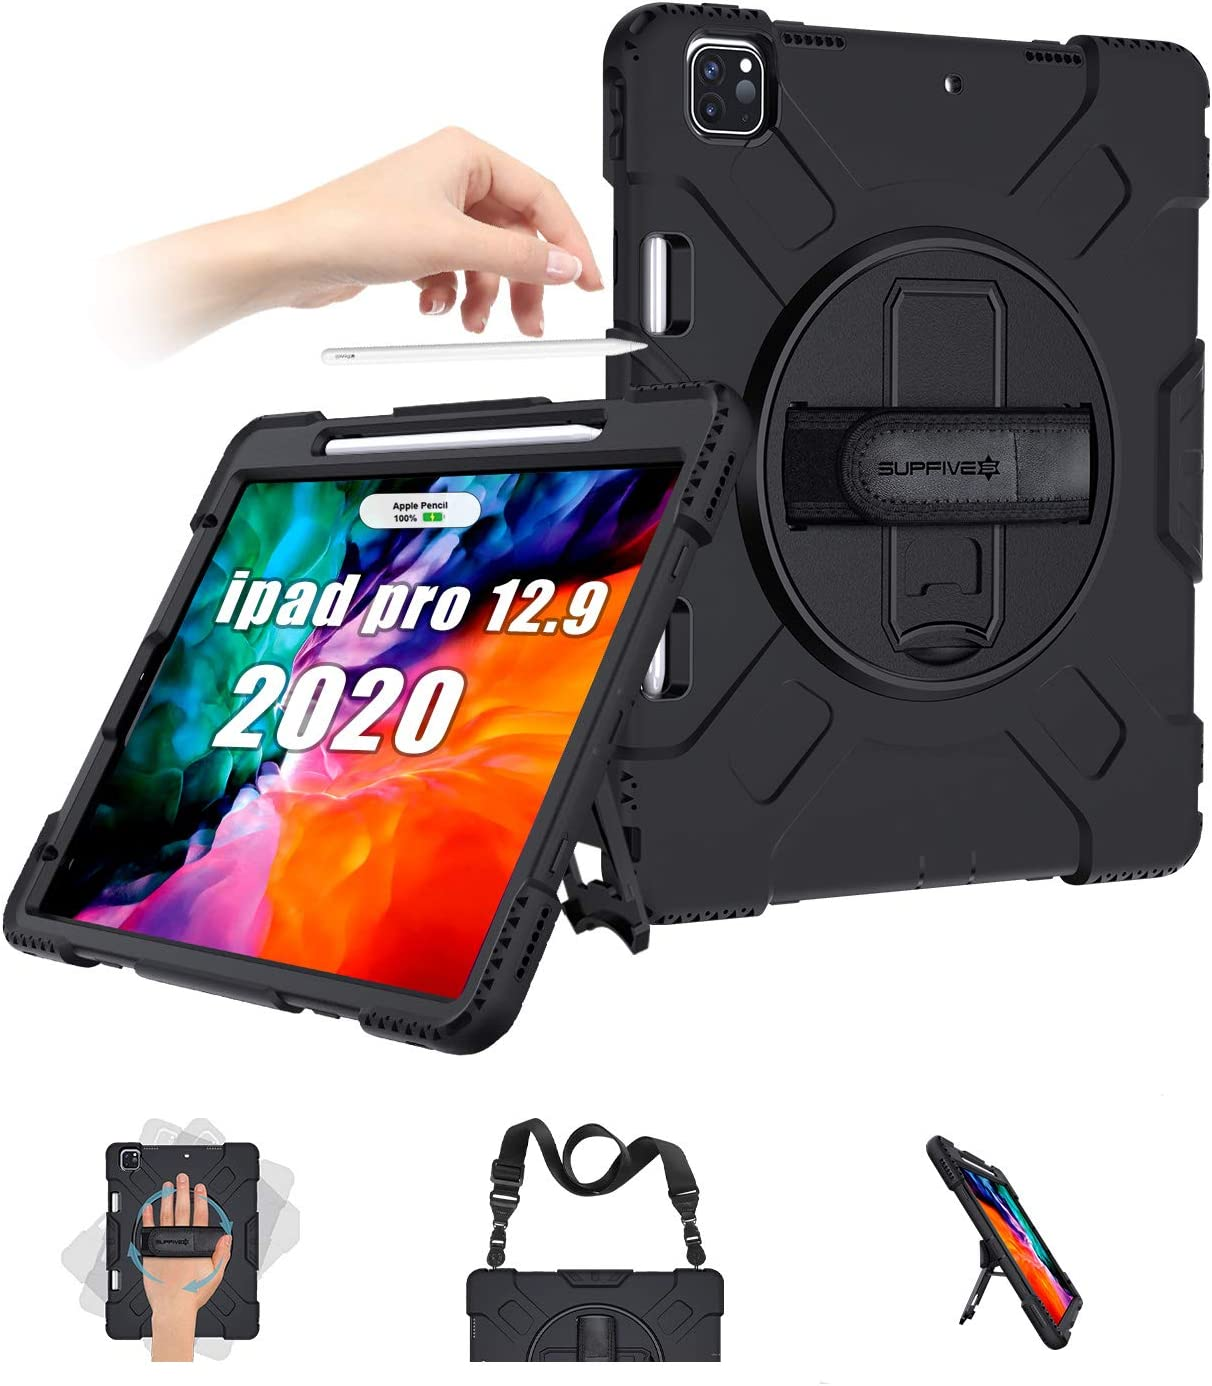 SUPFIVES iPad Pro 12.9 Case 2020 iPad 12.9 4th Generation Case with Pencil Holder Support Pencil Charging+Hand Strap+Shoulder Strap+360 Rotatable Stand Case for iPad Pro 12.9 2020/2018(Black)